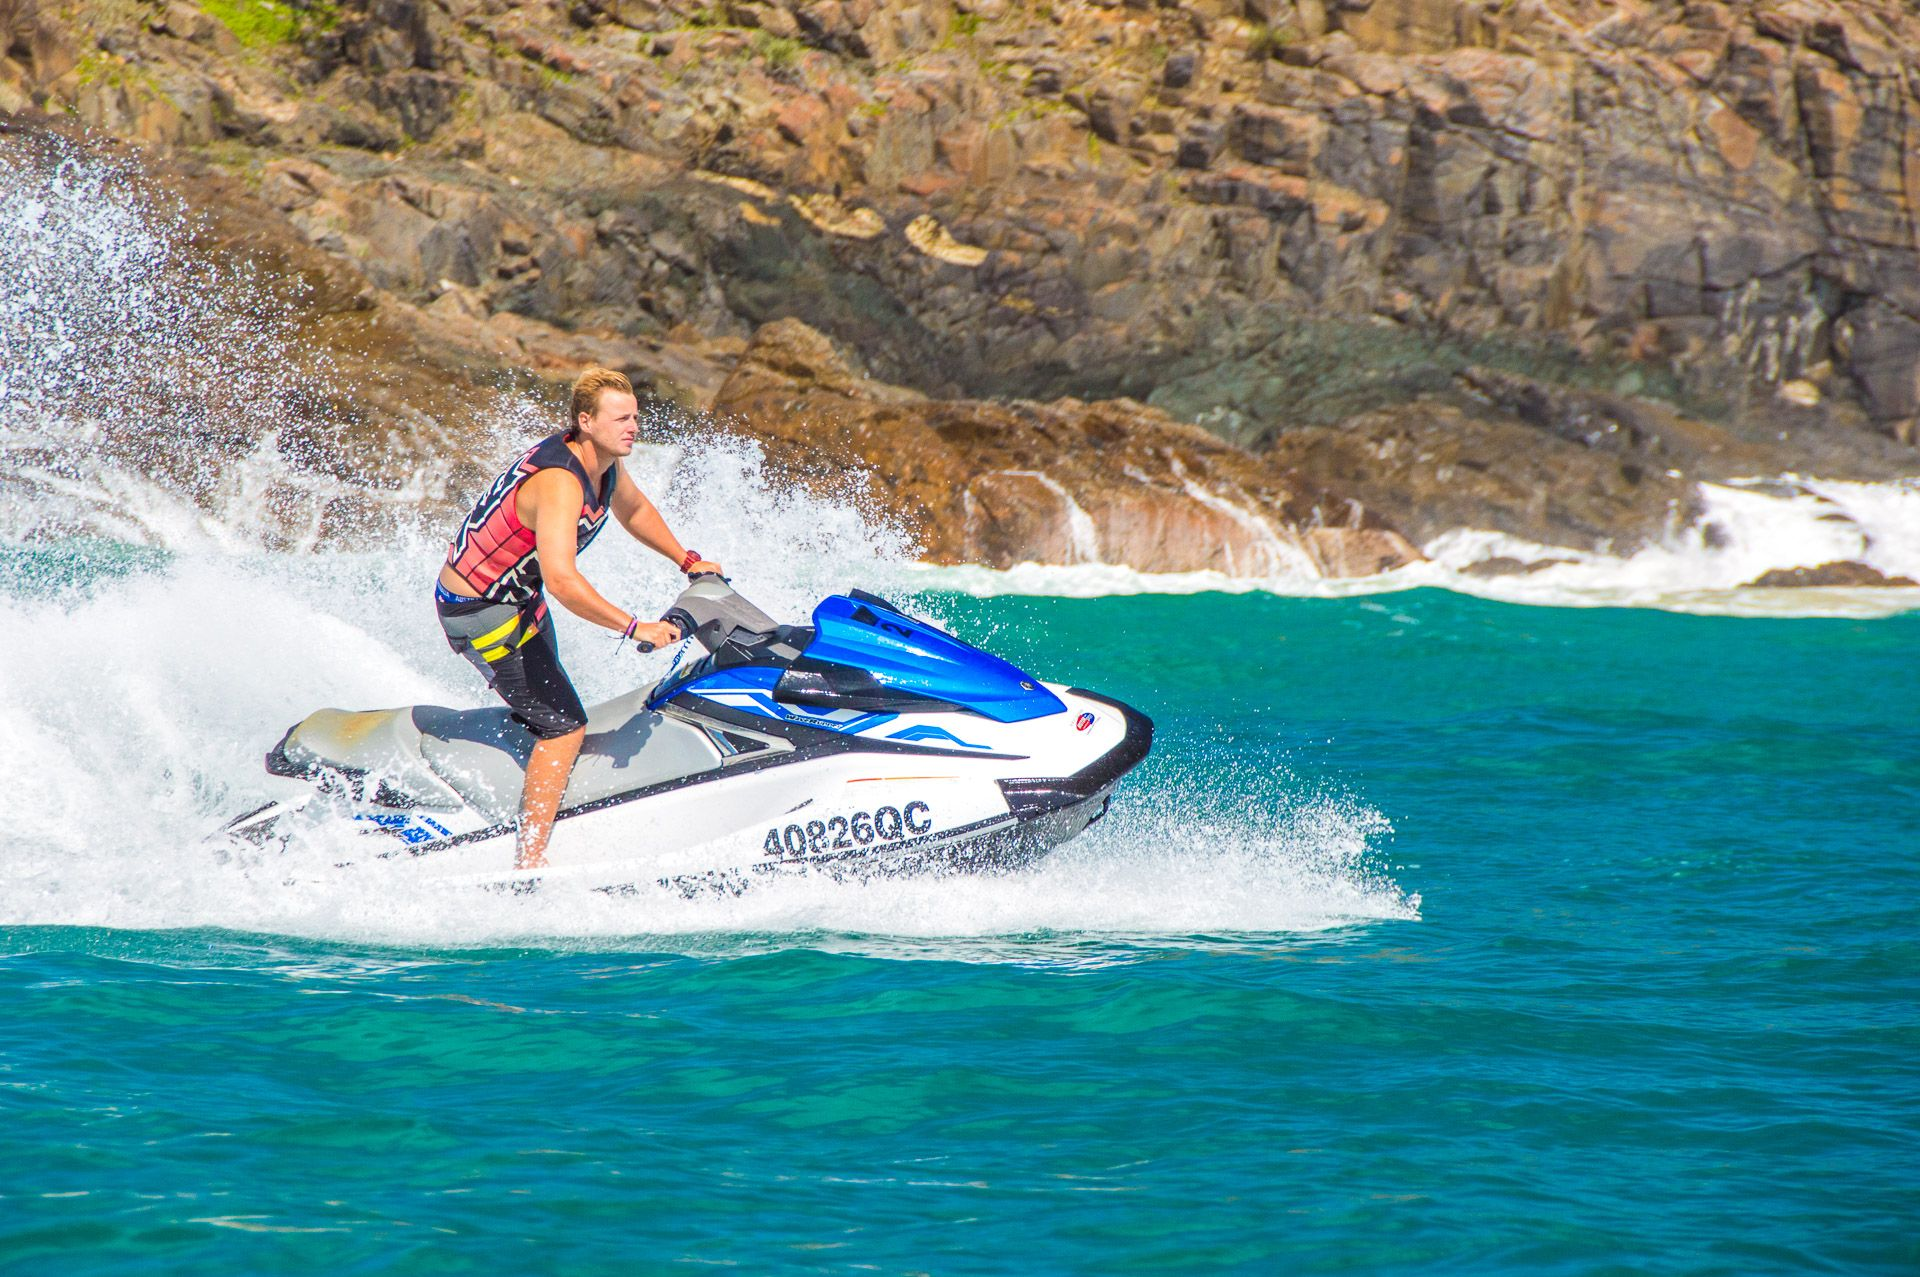 PRICES & BOOKINGS - Noosa Jet Ski Hire